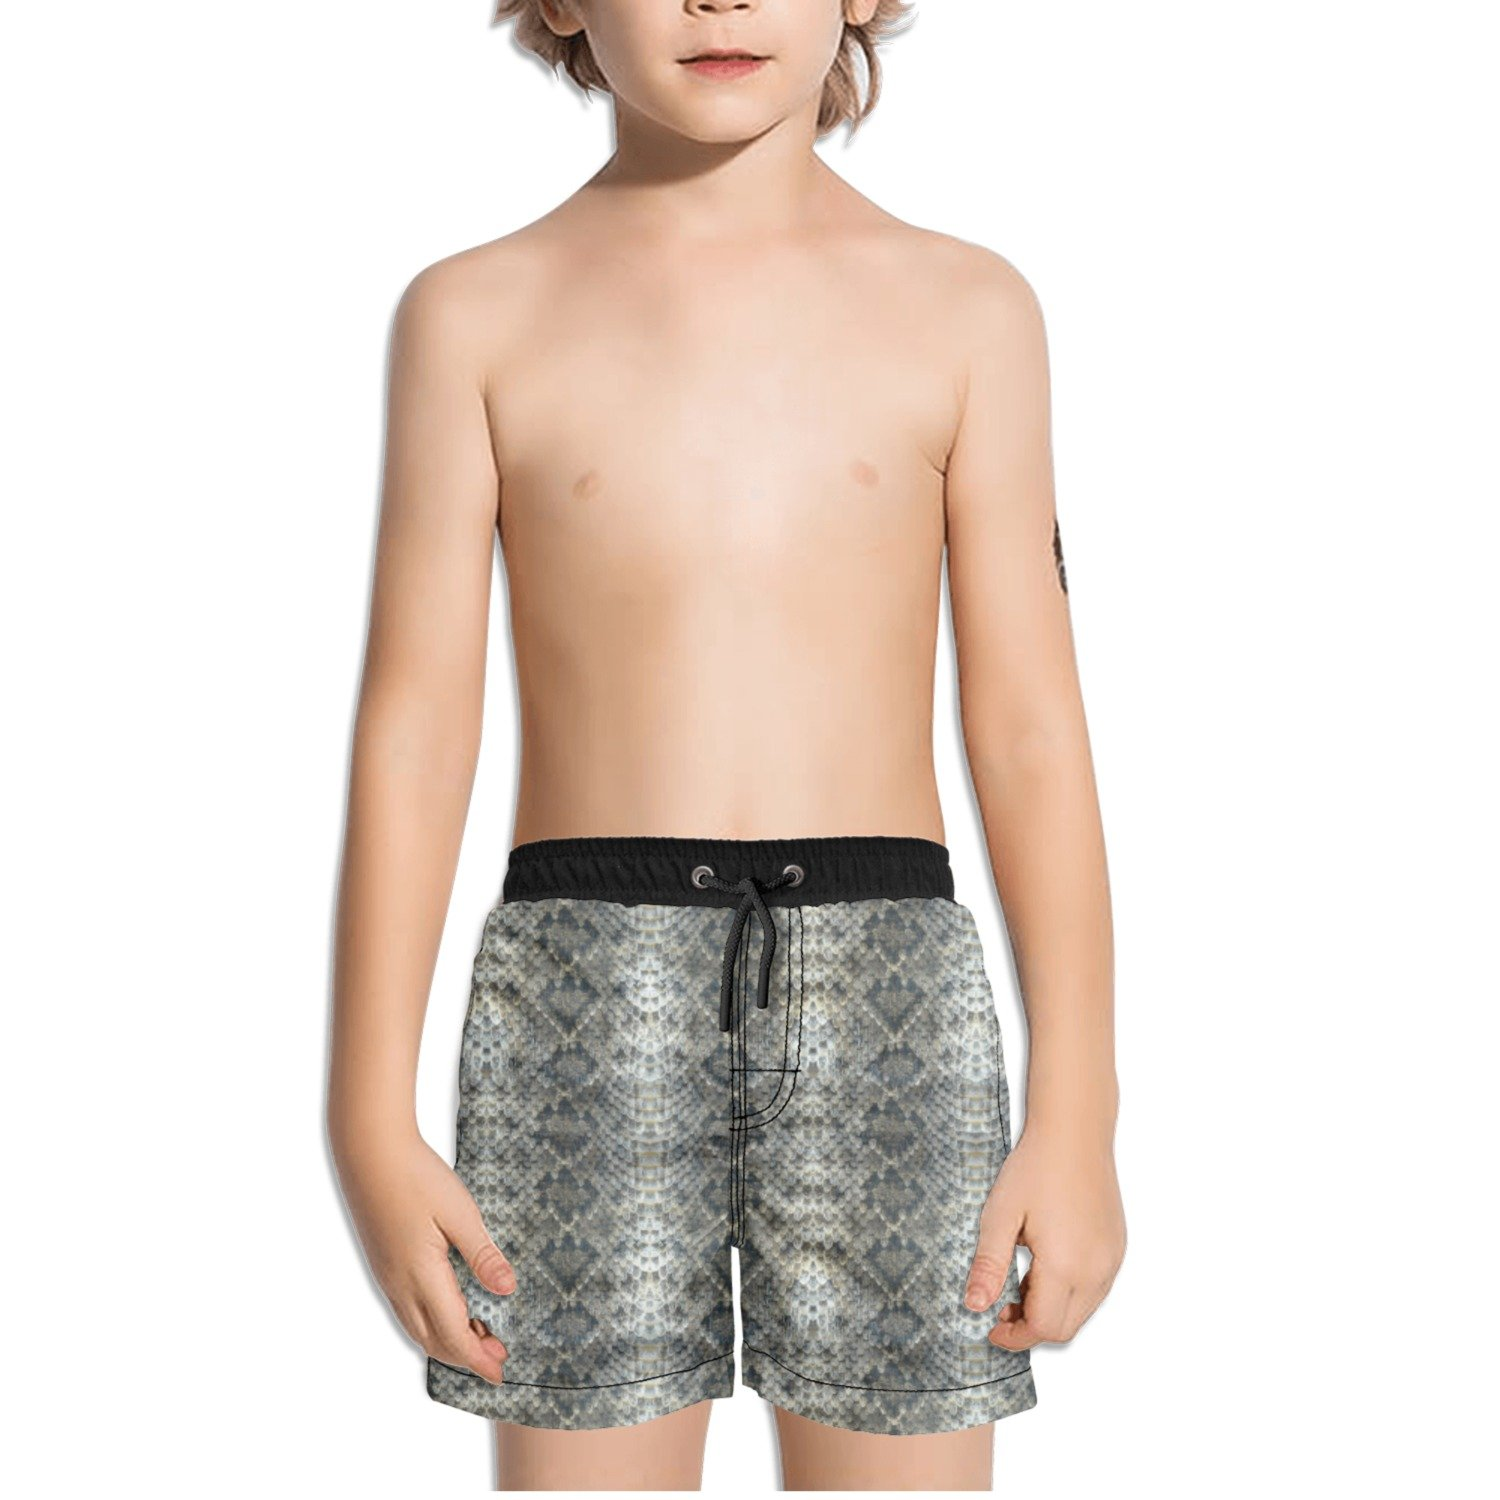 Trum Namii Boys Quick Dry Swim Trunks Print Python Snake Skin Shorts